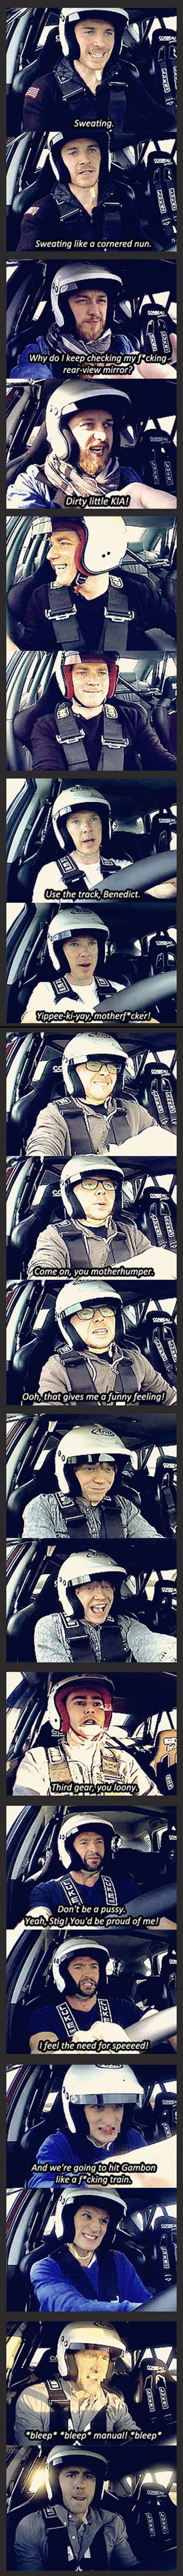 Top Gear brings out the best in celebrities :)